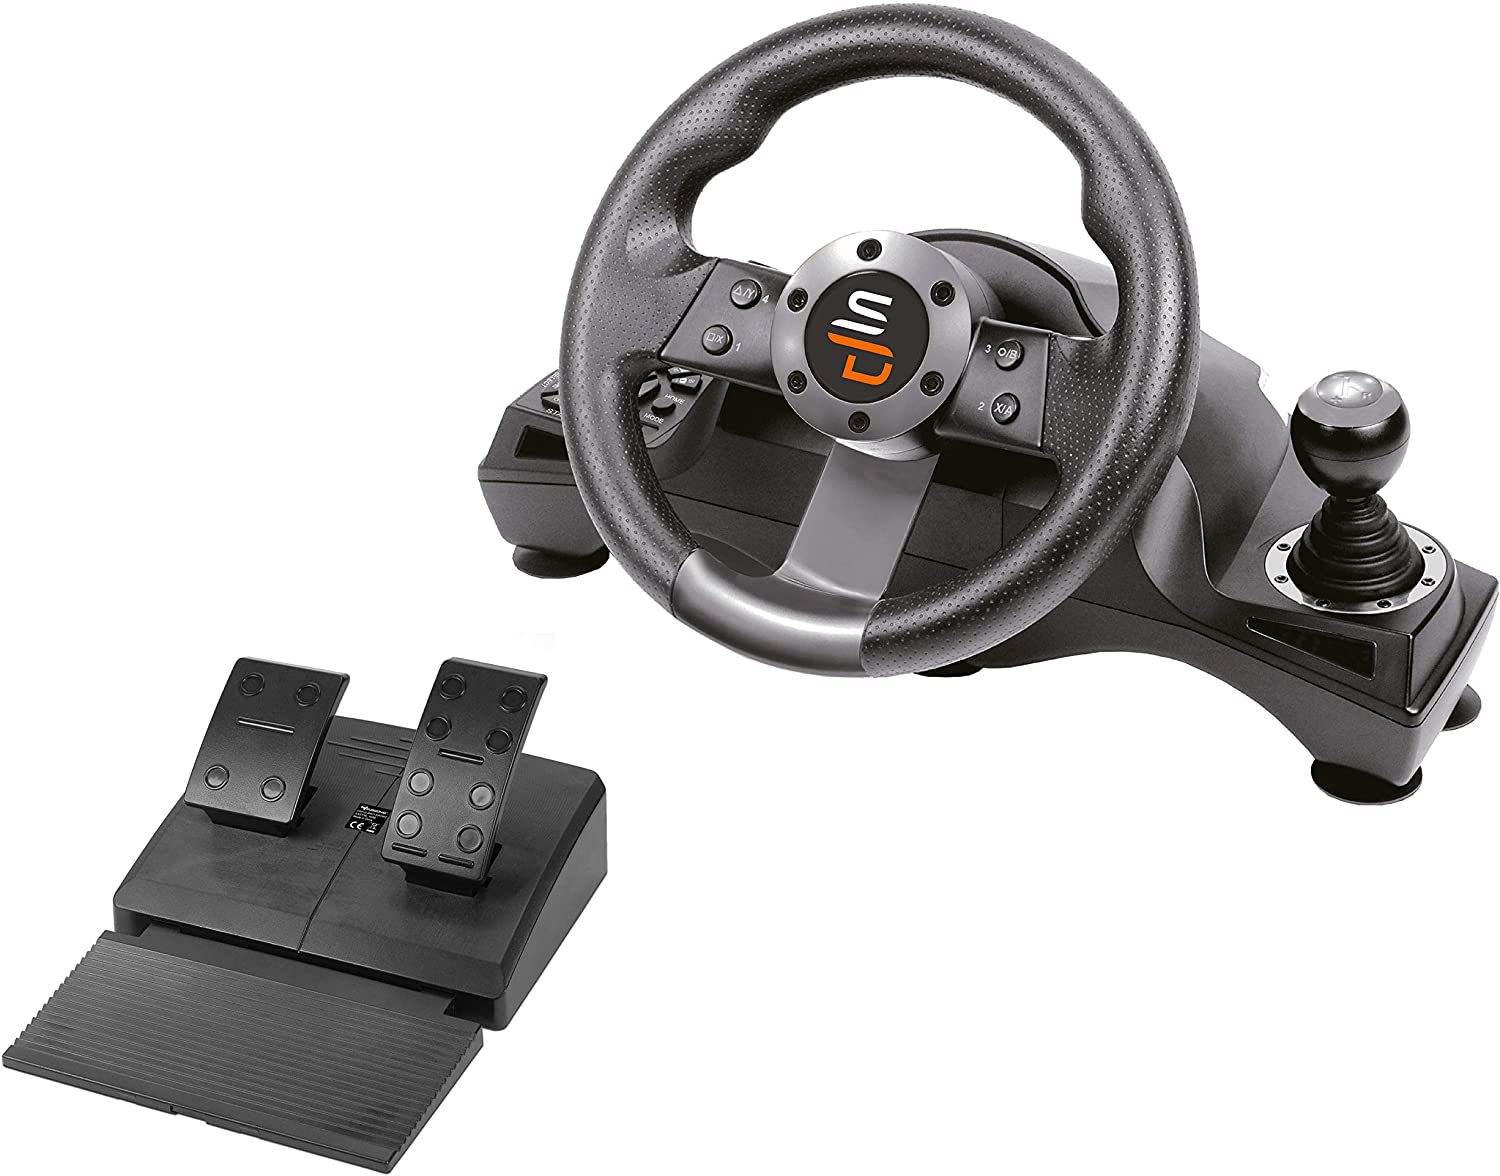 PS4 Gaming Racing Steering Wheel For PS4 Car Steering Wheel Driving Controller Playstation 4 Accessories